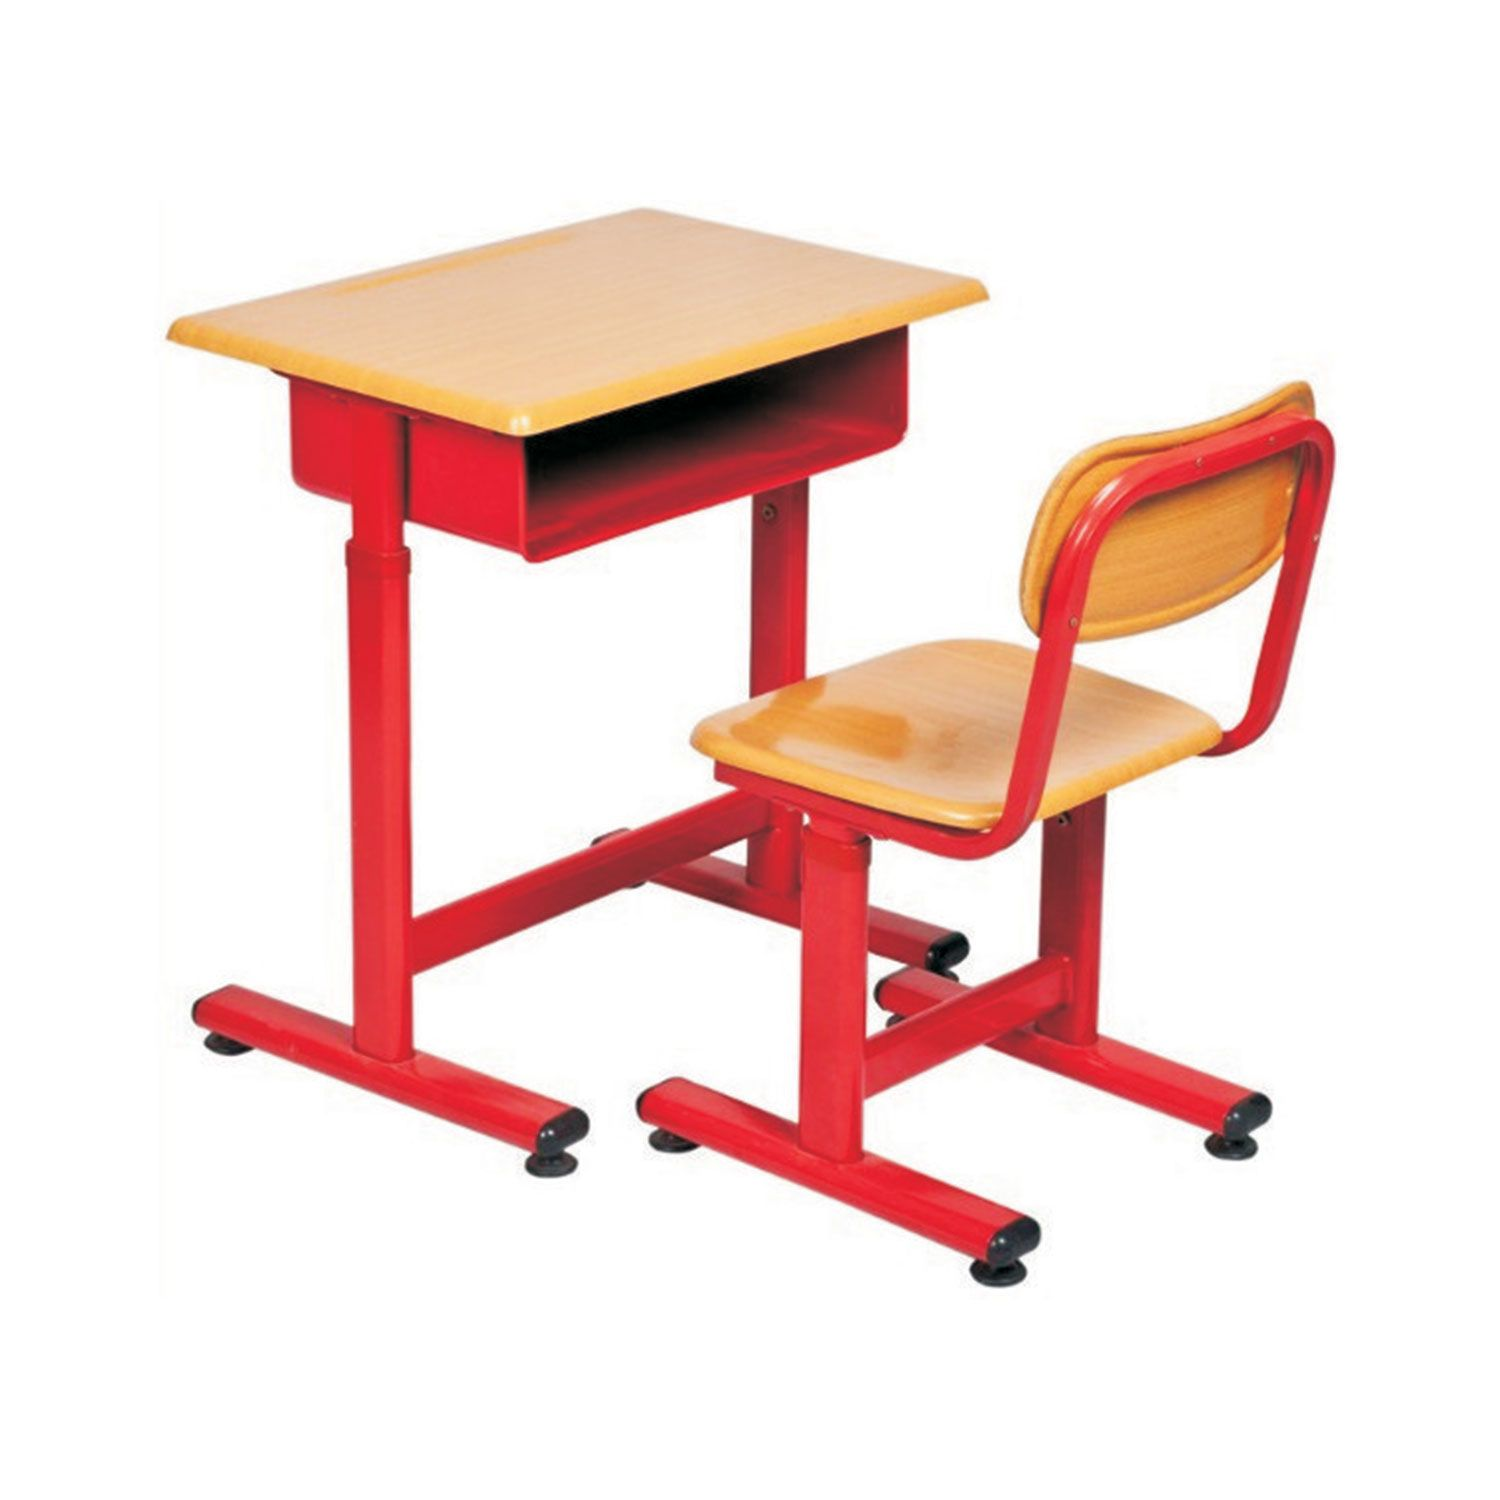 School Table And Chairs School Furniture Kids Furniture Manufacturer Kids Study